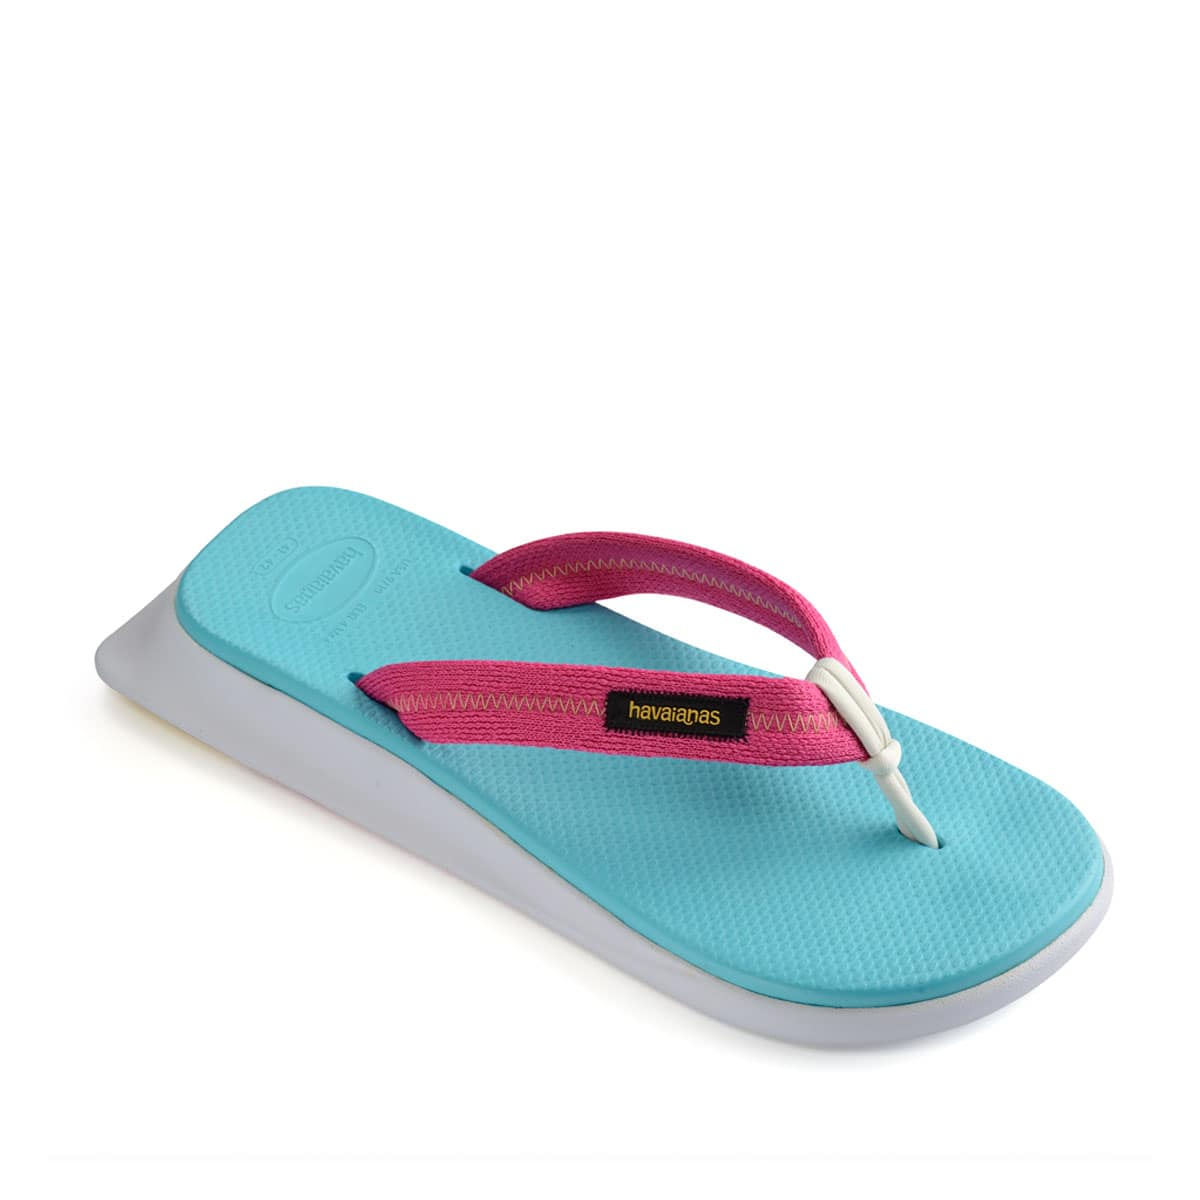 Havaianas TRADI ZORI INSITUTIONAL Blue/Pink 20FA-S_photo_large